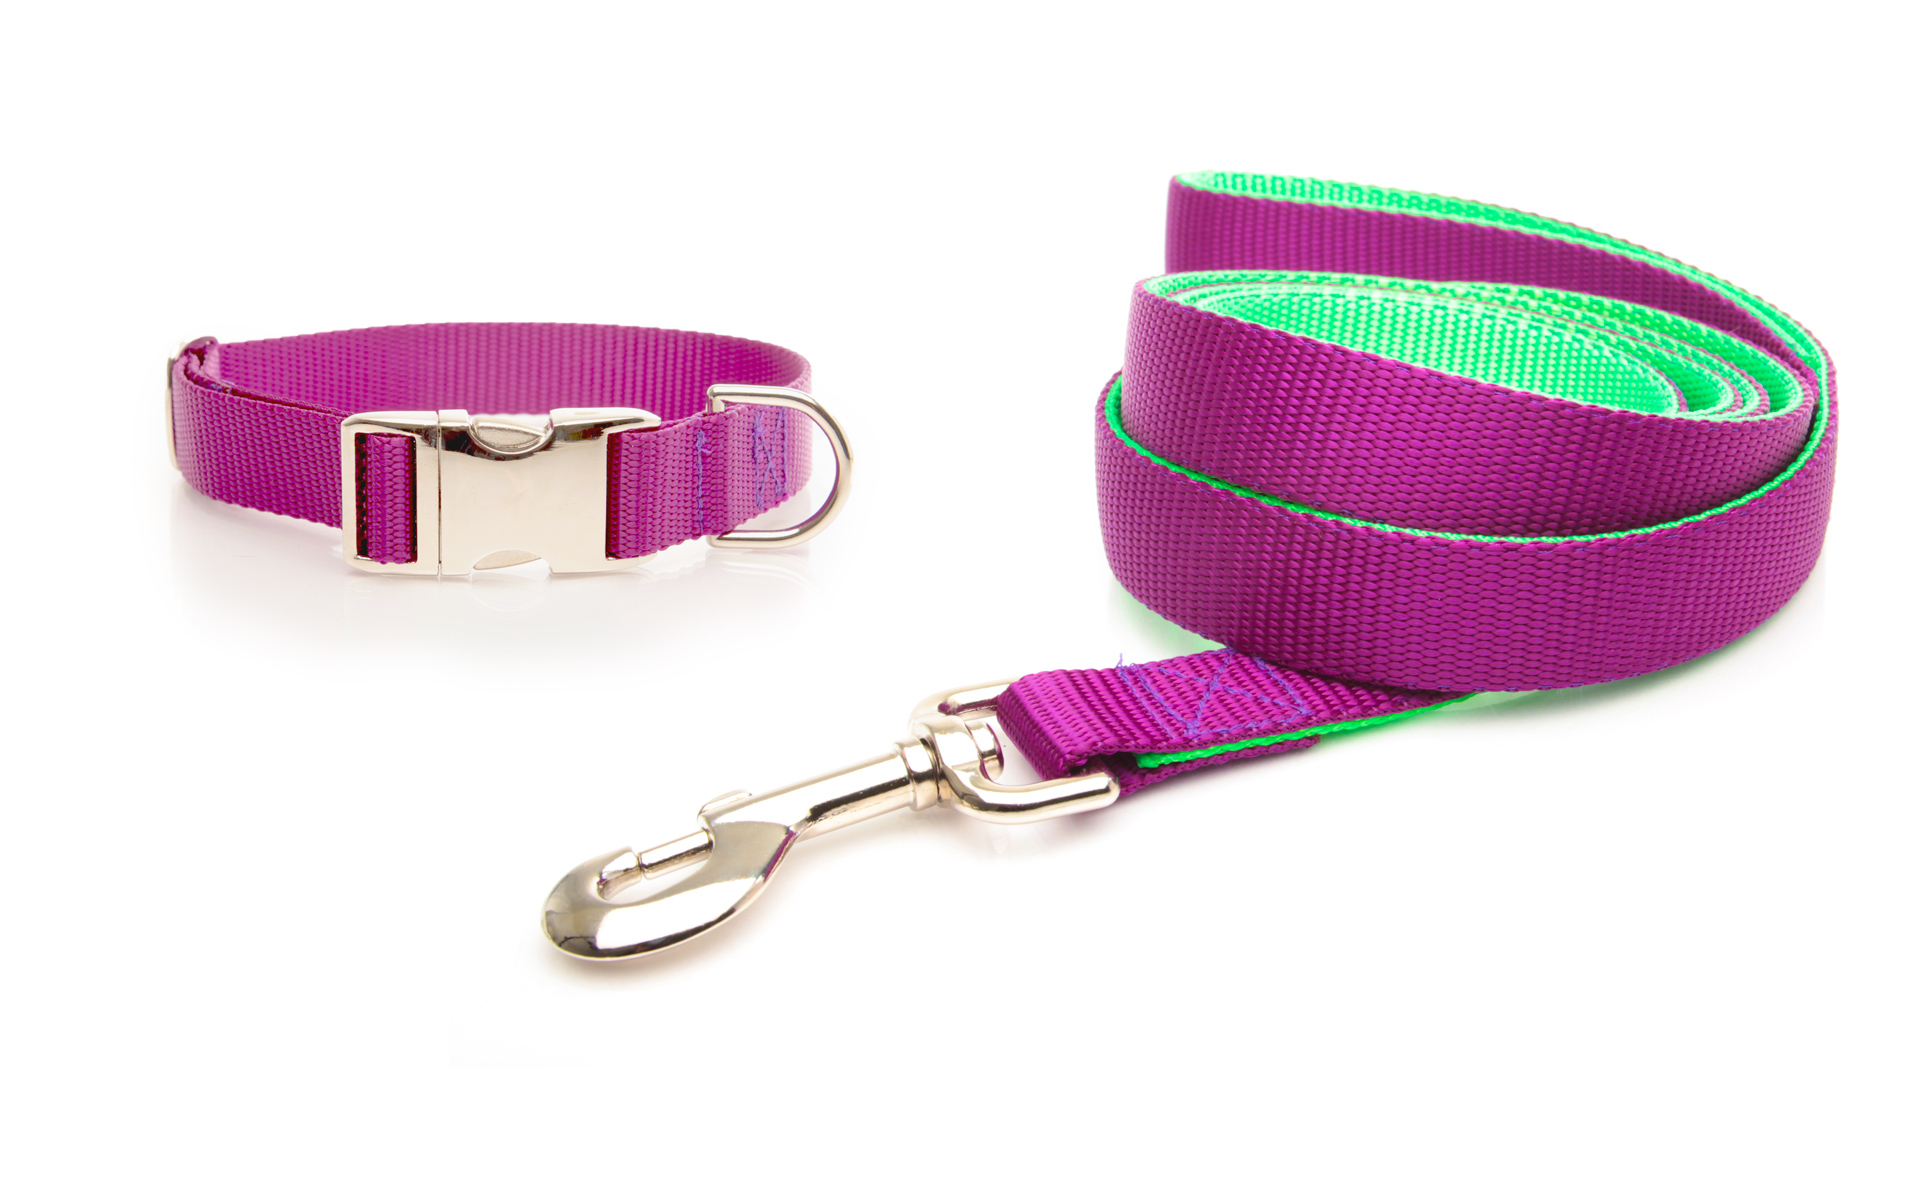 Double ply leashes